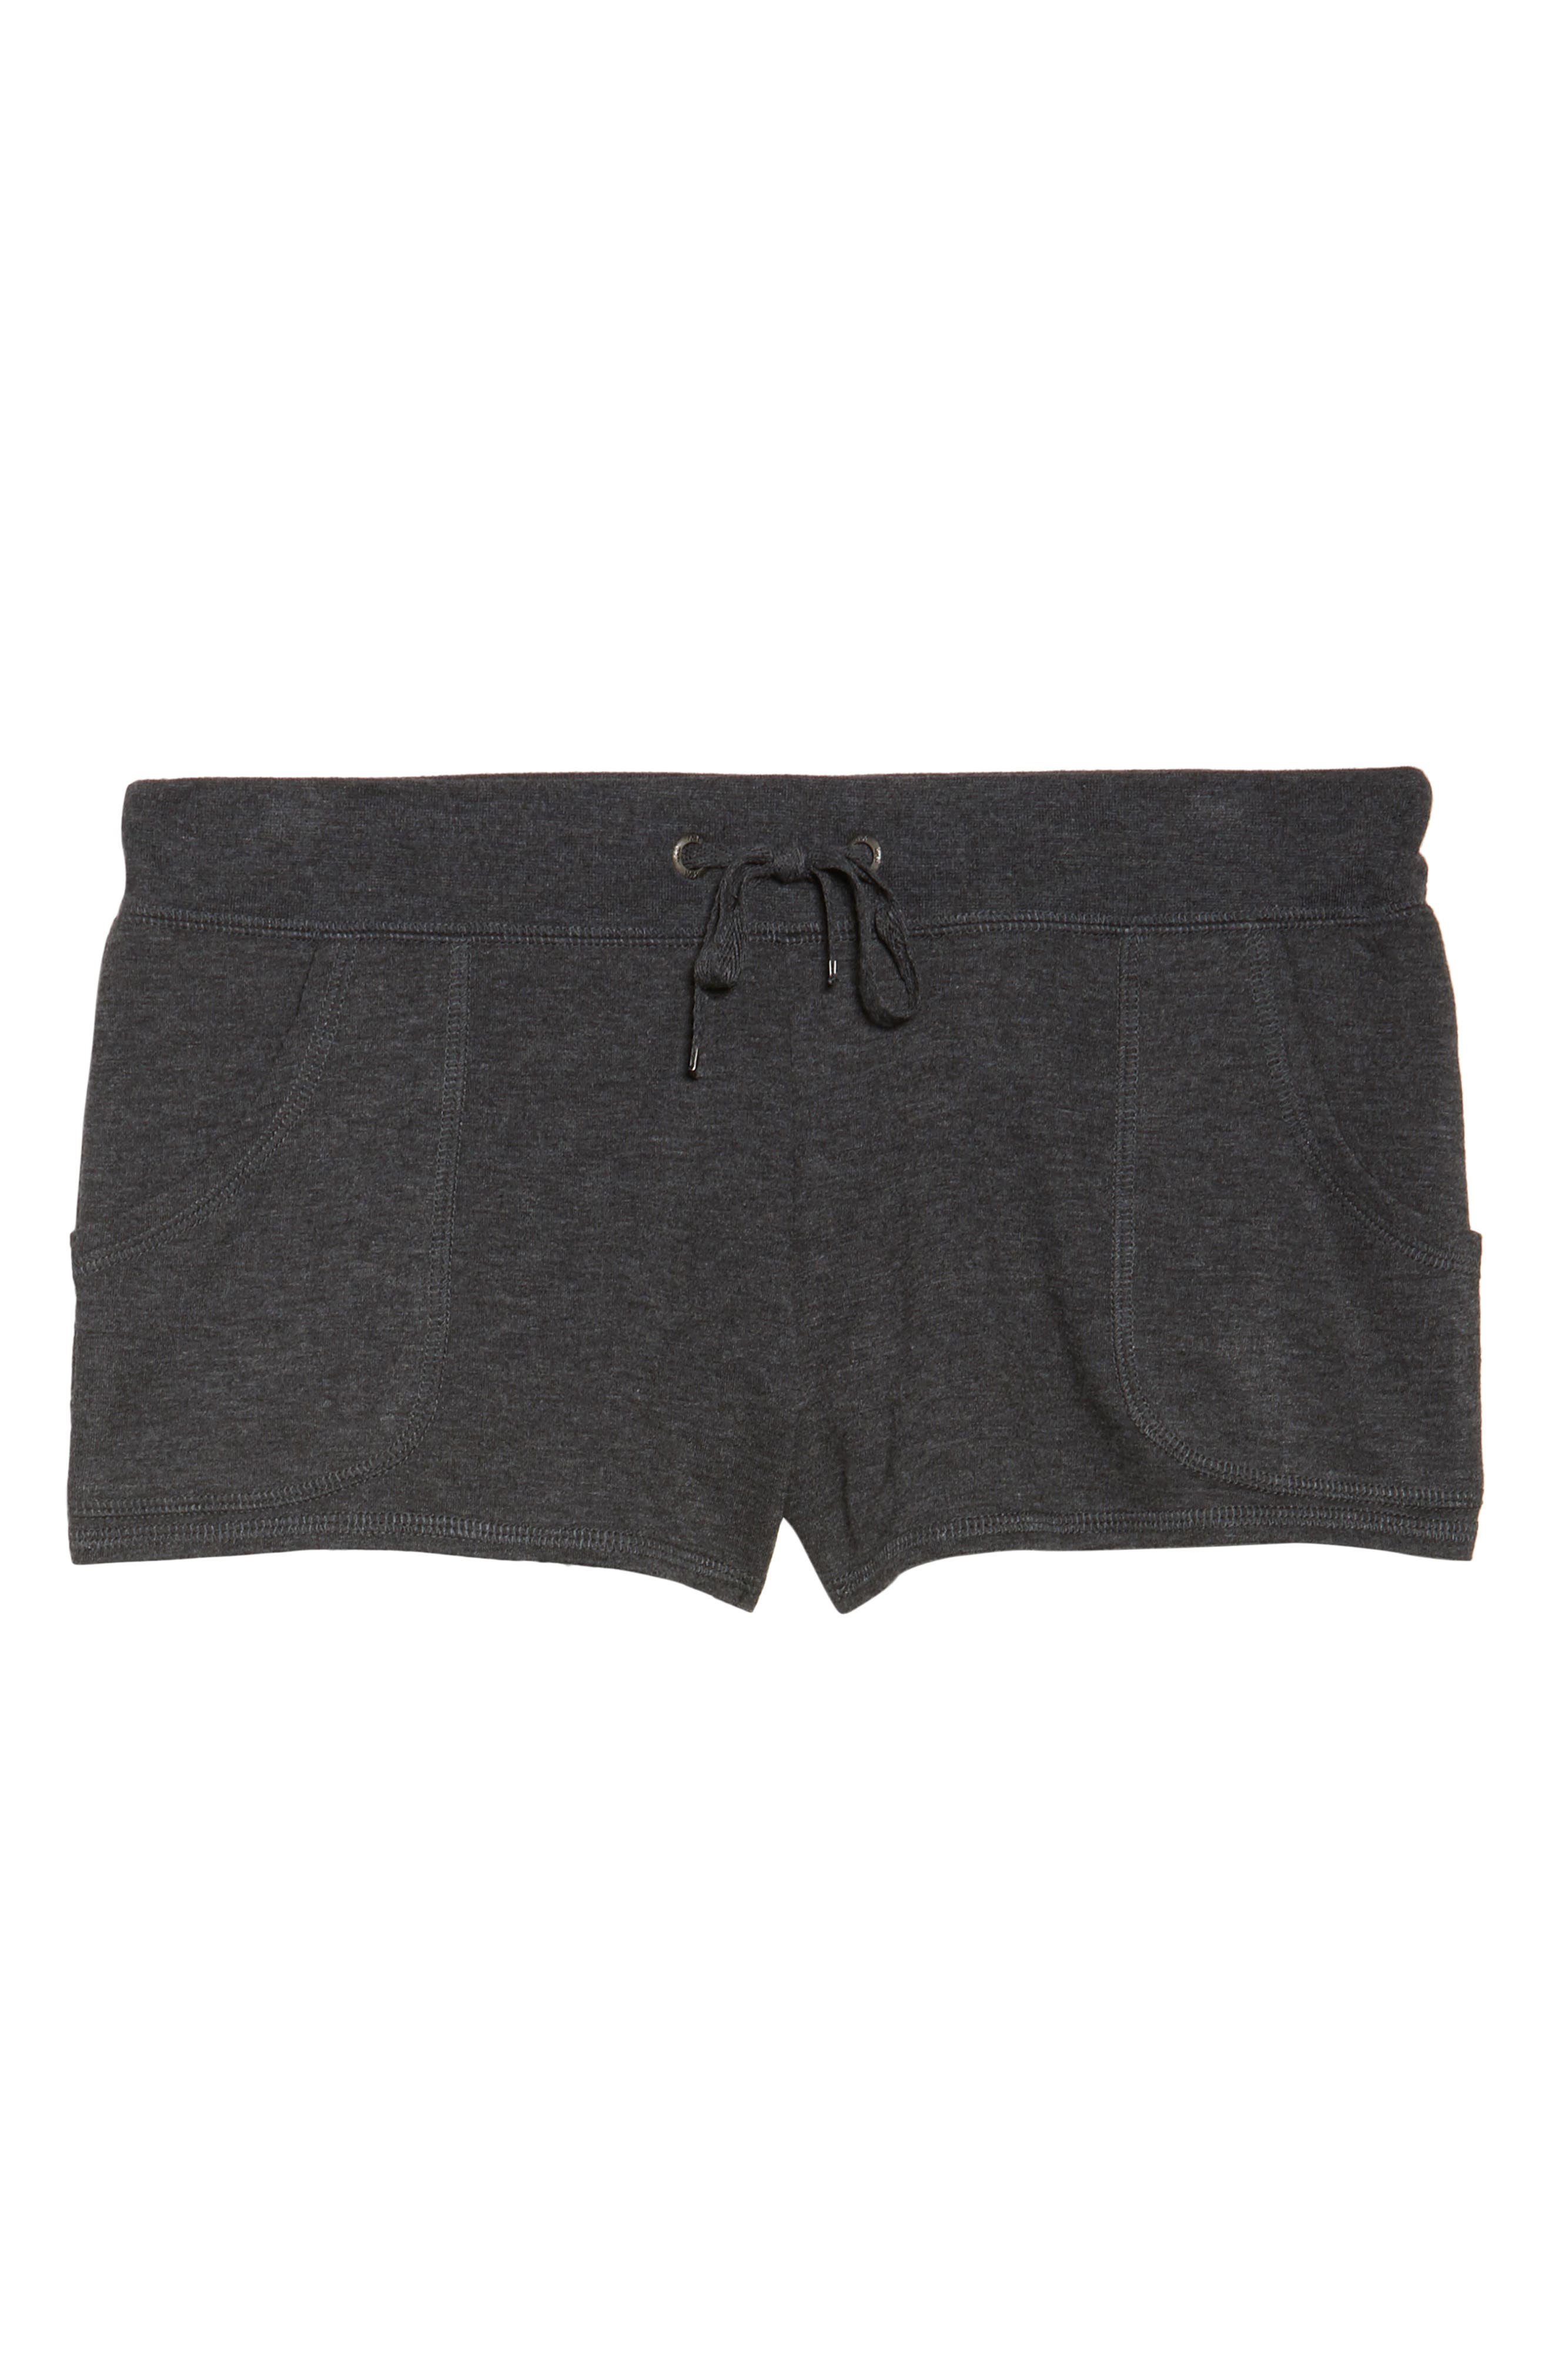 Down To The Details Lounge Shorts,                             Alternate thumbnail 6, color,                             030